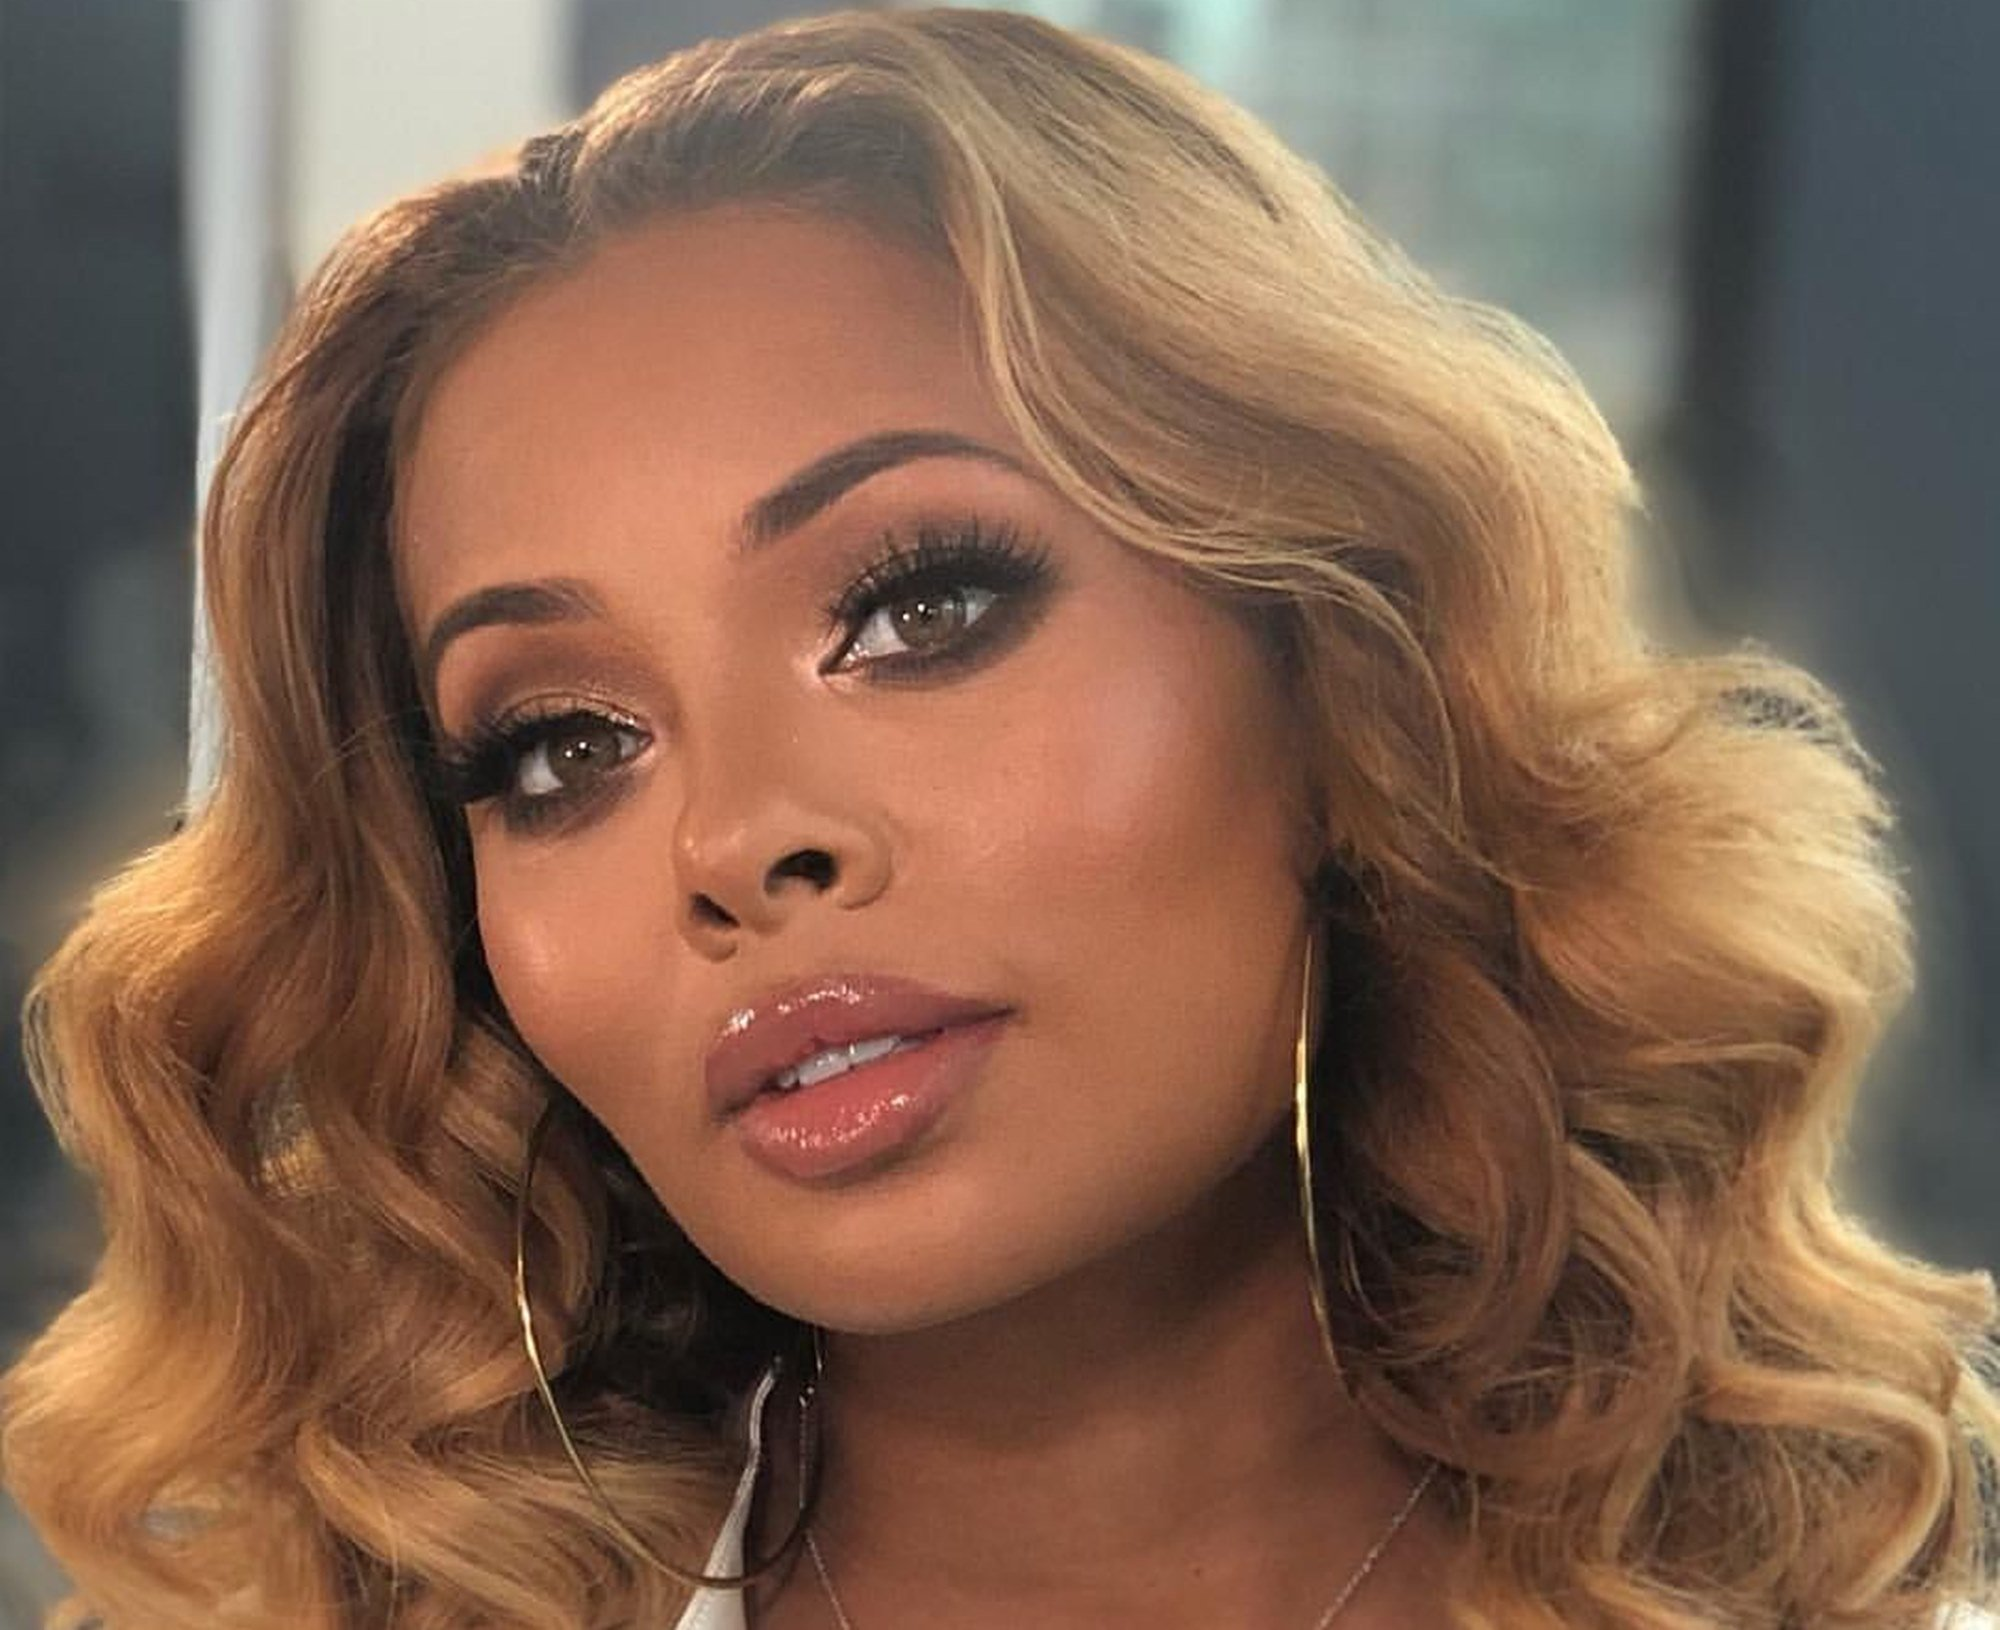 Eva Marcille Celebrates The Inauguration Day – See The Video She Shared